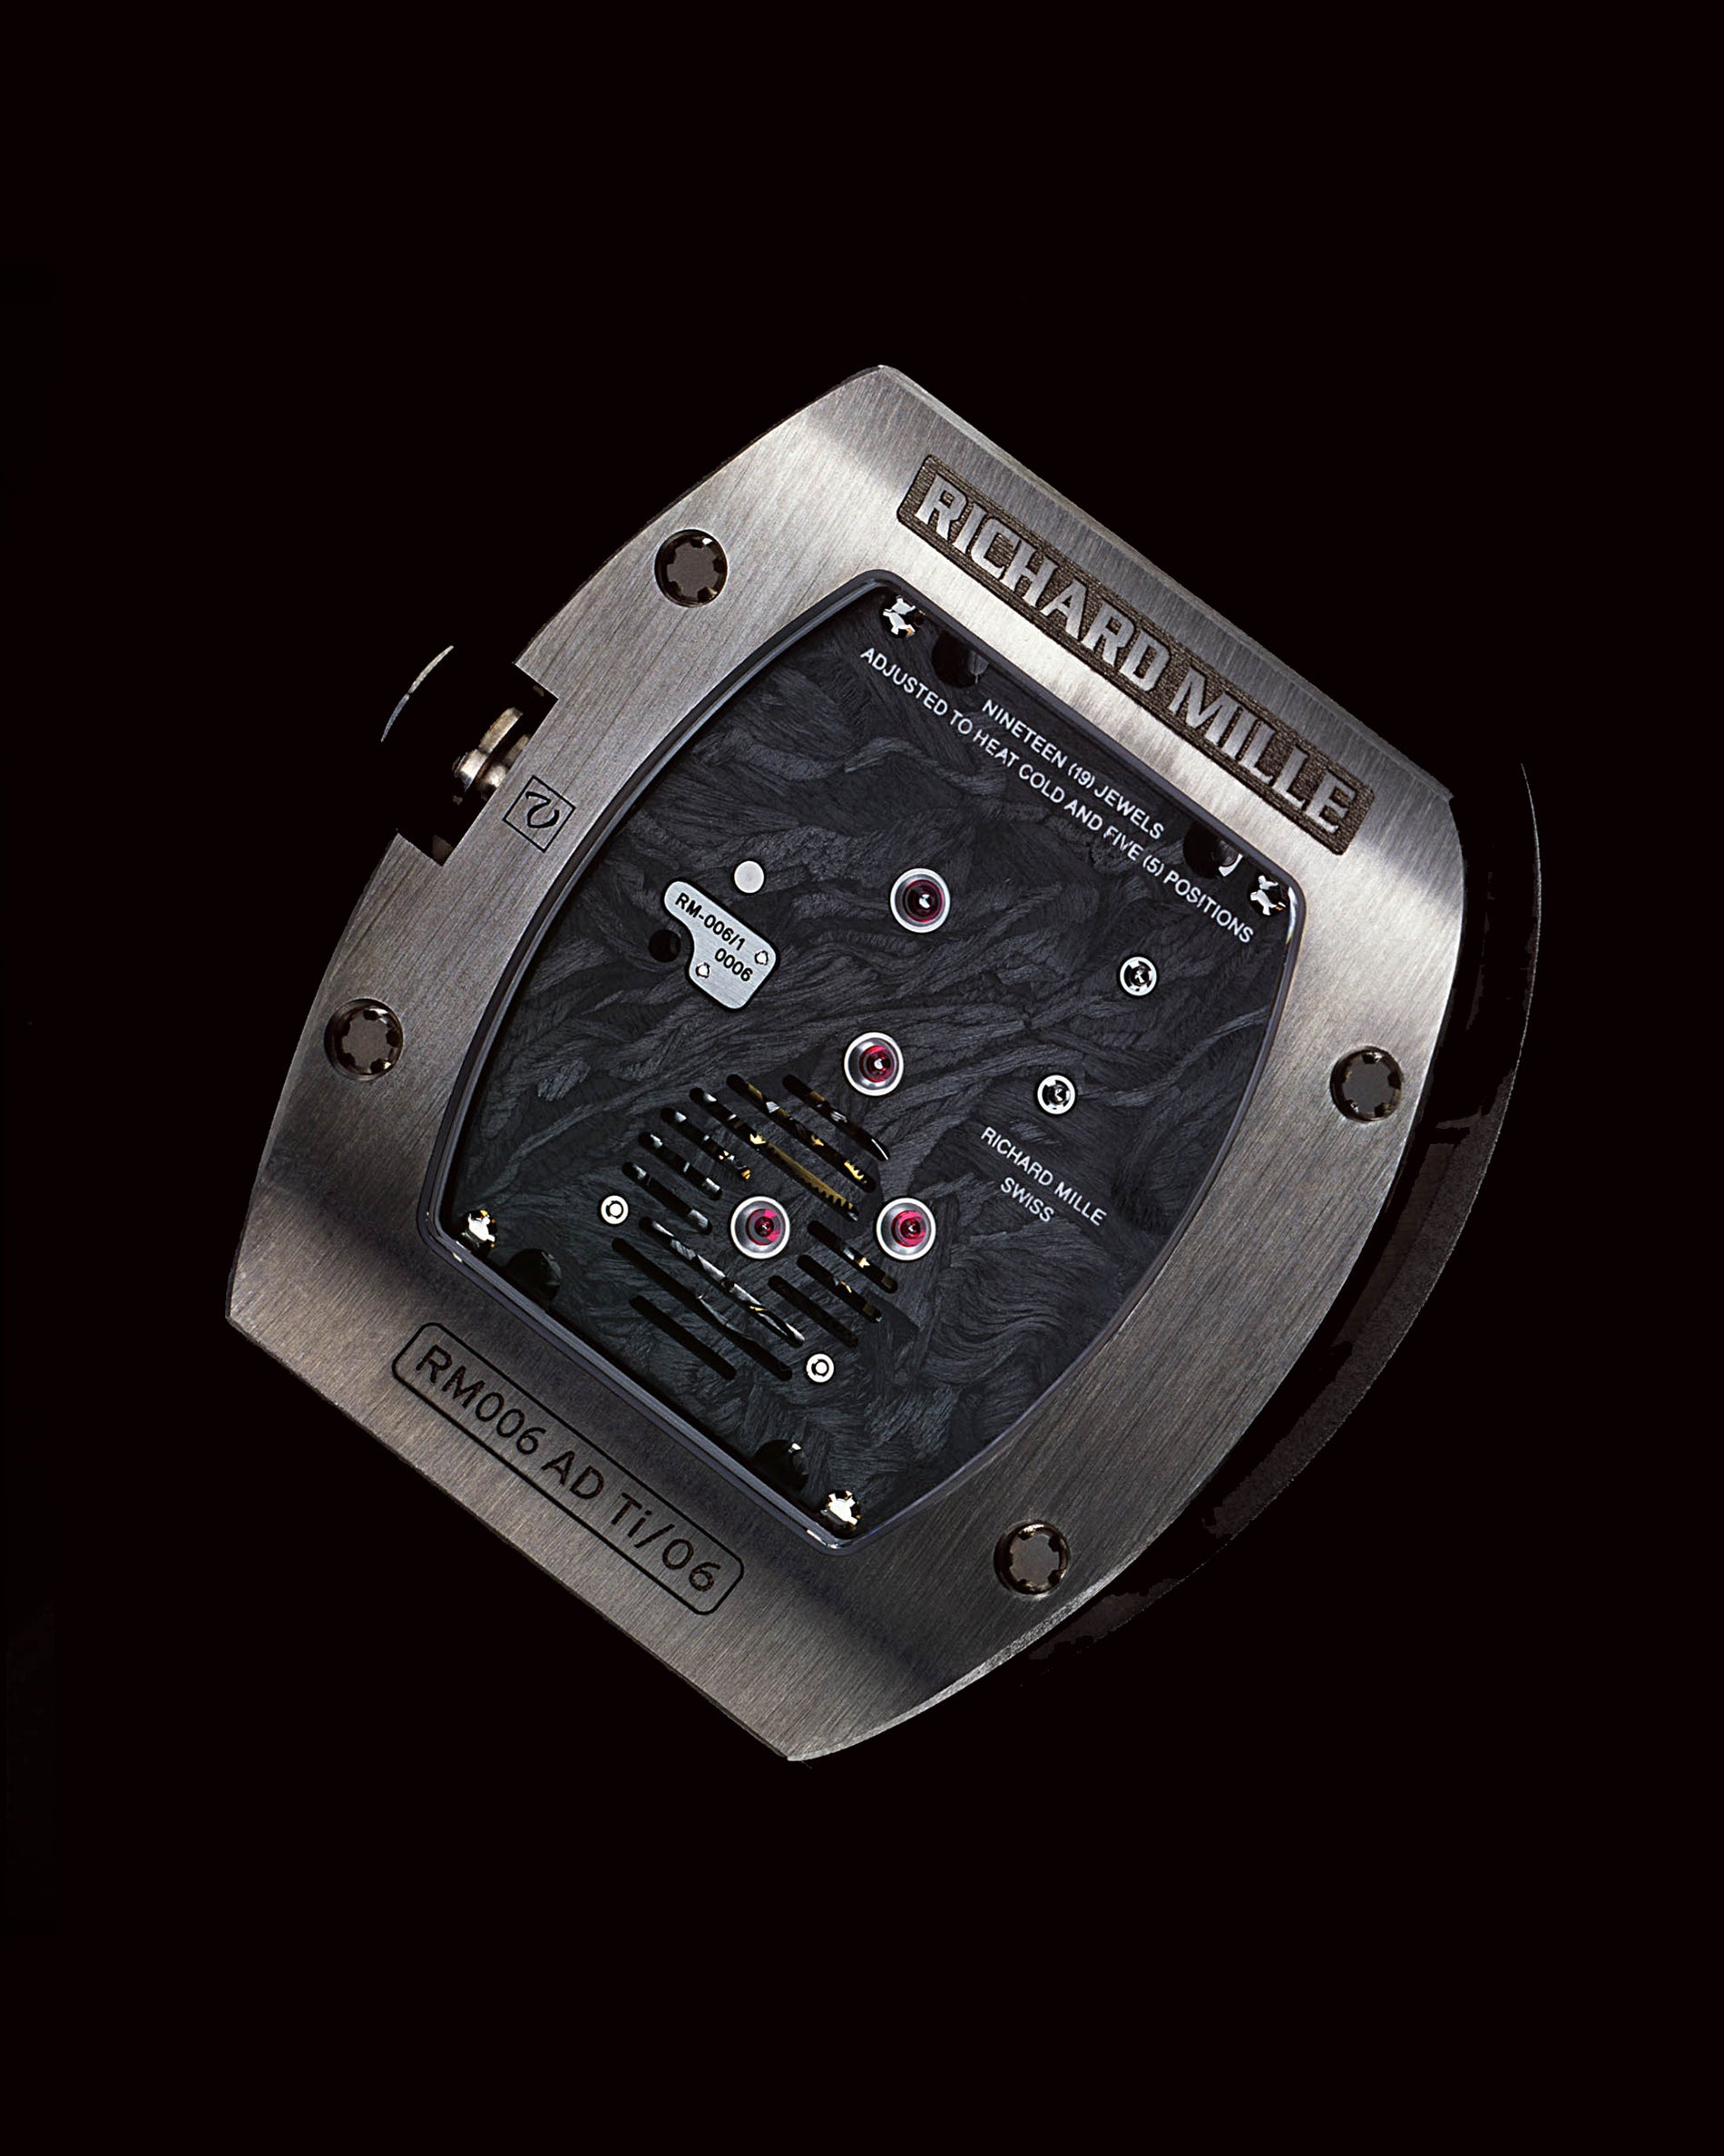 Richard Mille RM006 caseback showing carbon fibre nanotubes base plate for movement for A Collected Man London